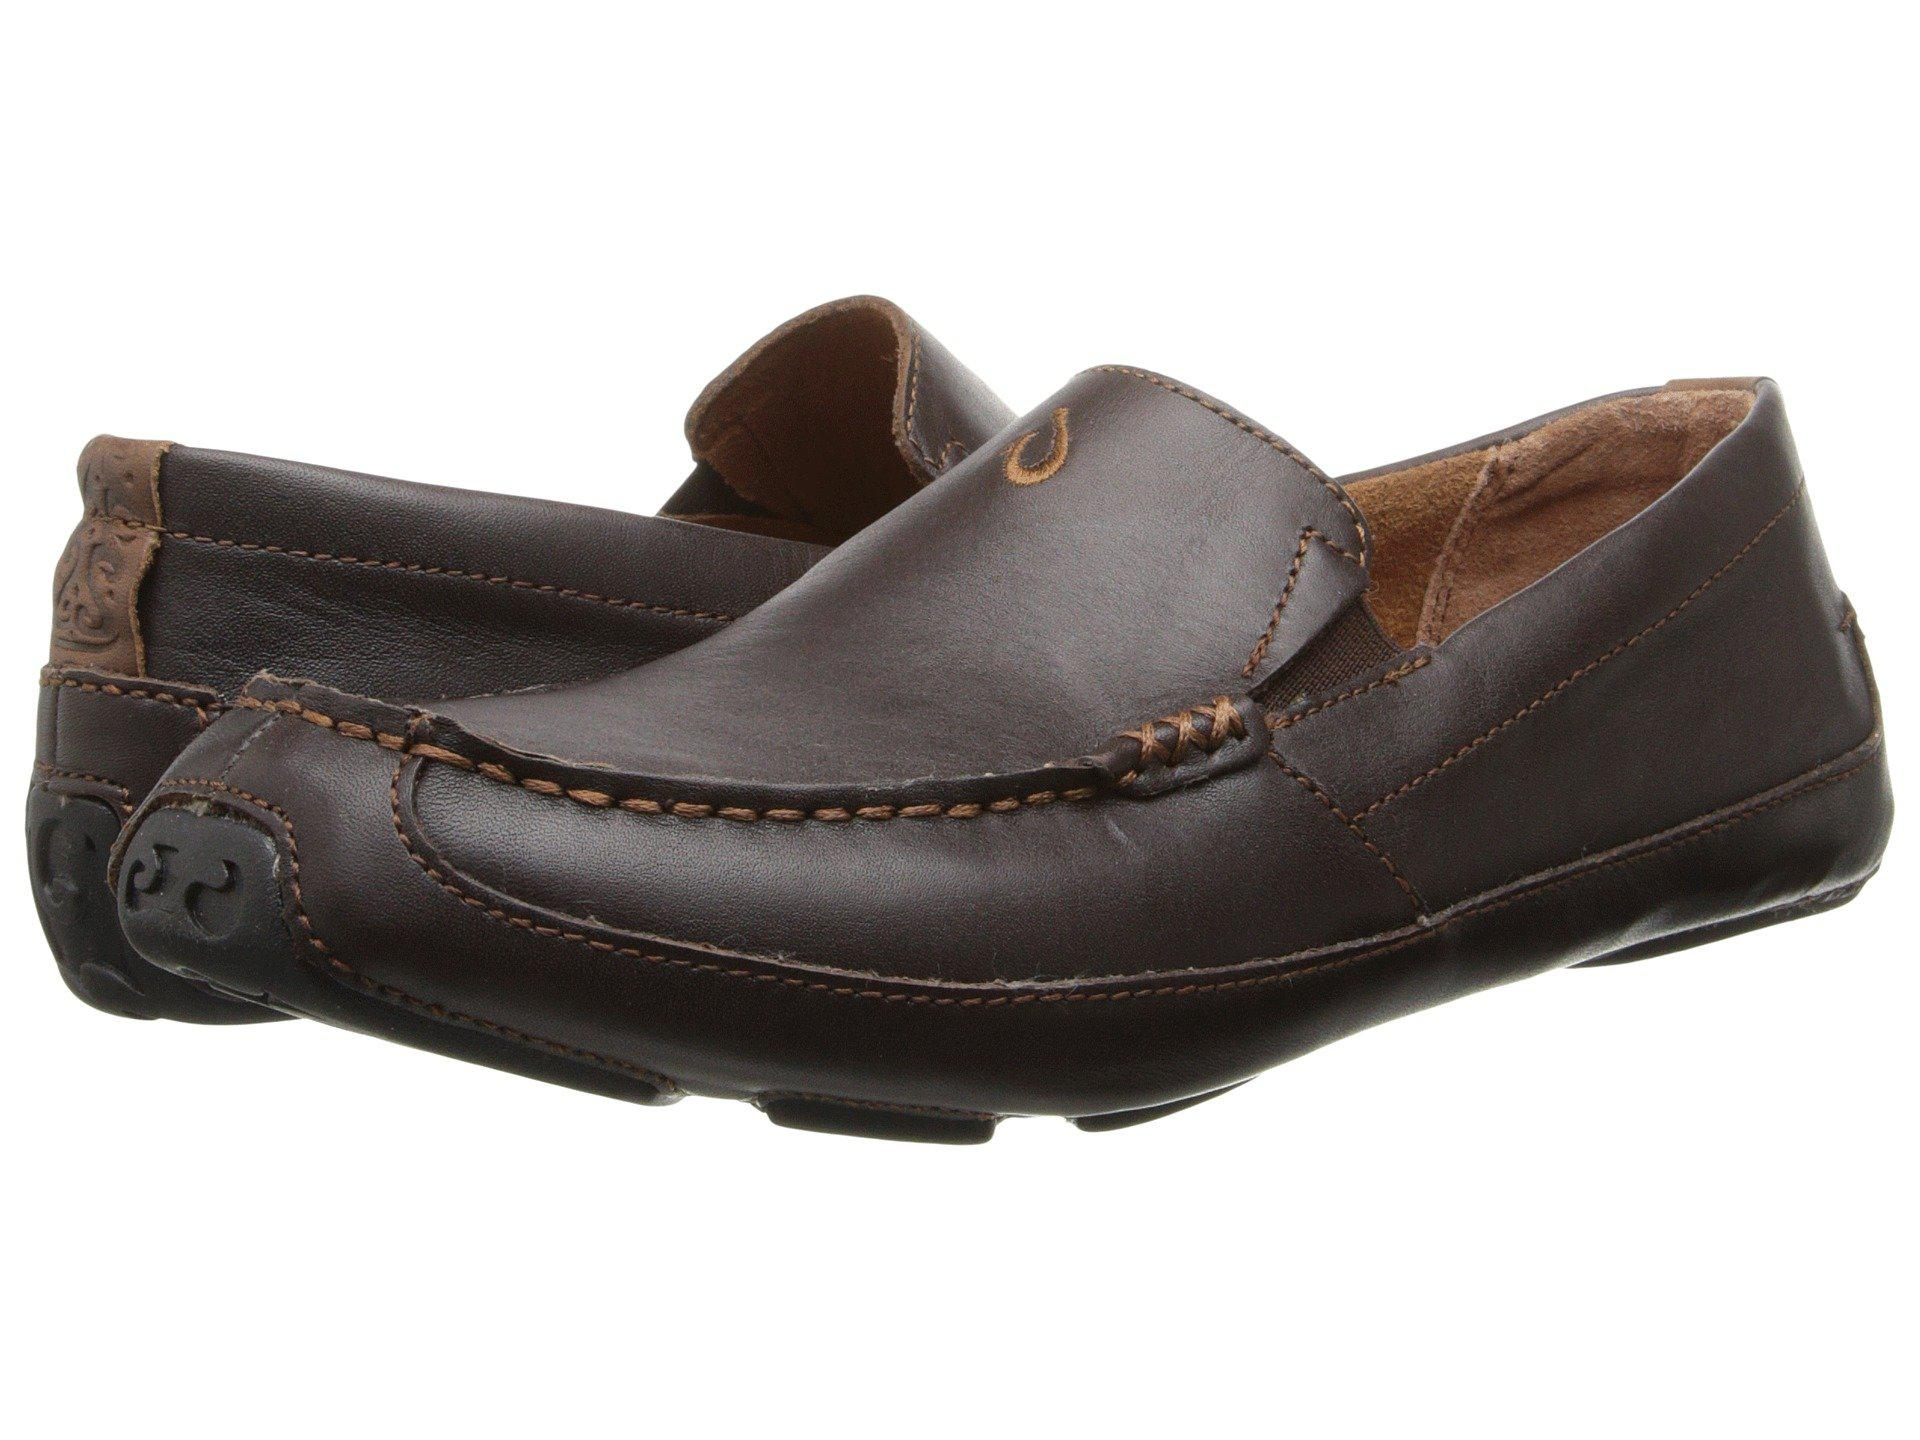 e5129ce30c3 Lyst - Olukai Akepa Moc (chocolate) Men s Shoes in Brown for Men